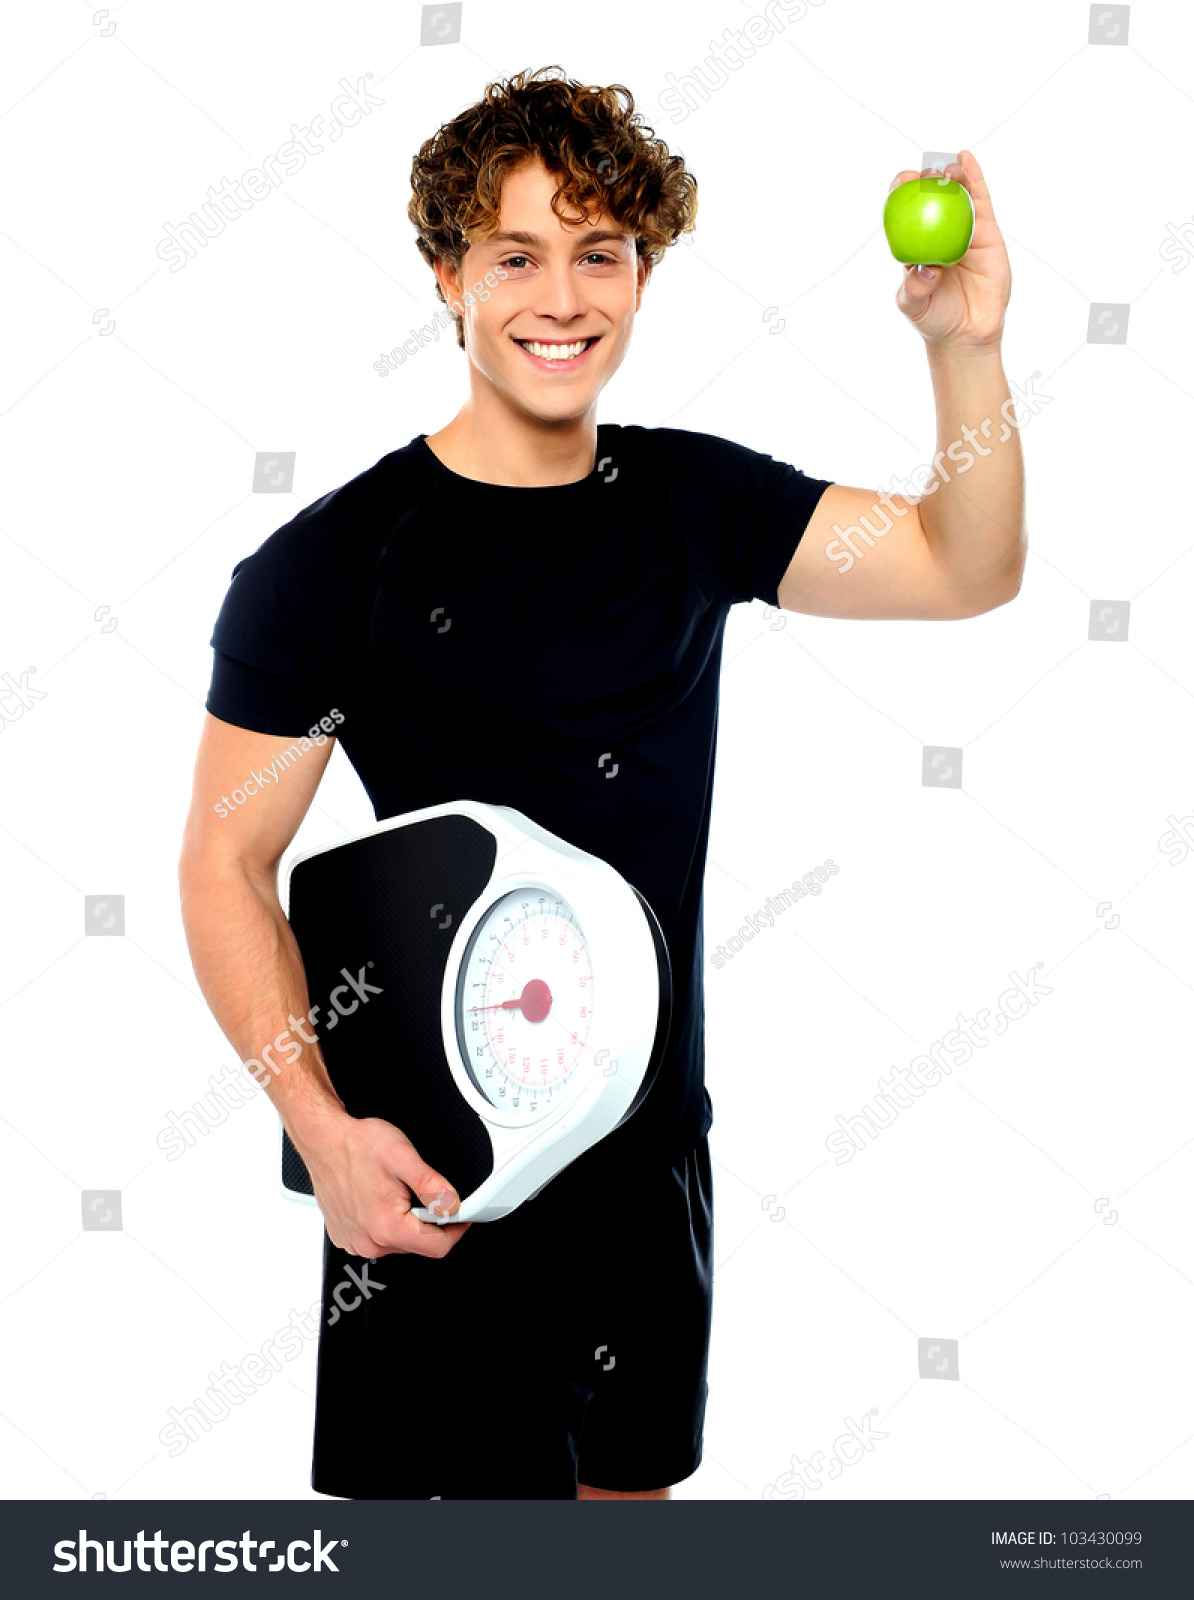 Background image scale to fit - Happy Fit Guy With Weighing Scale And Green Apple Isolated On White Background